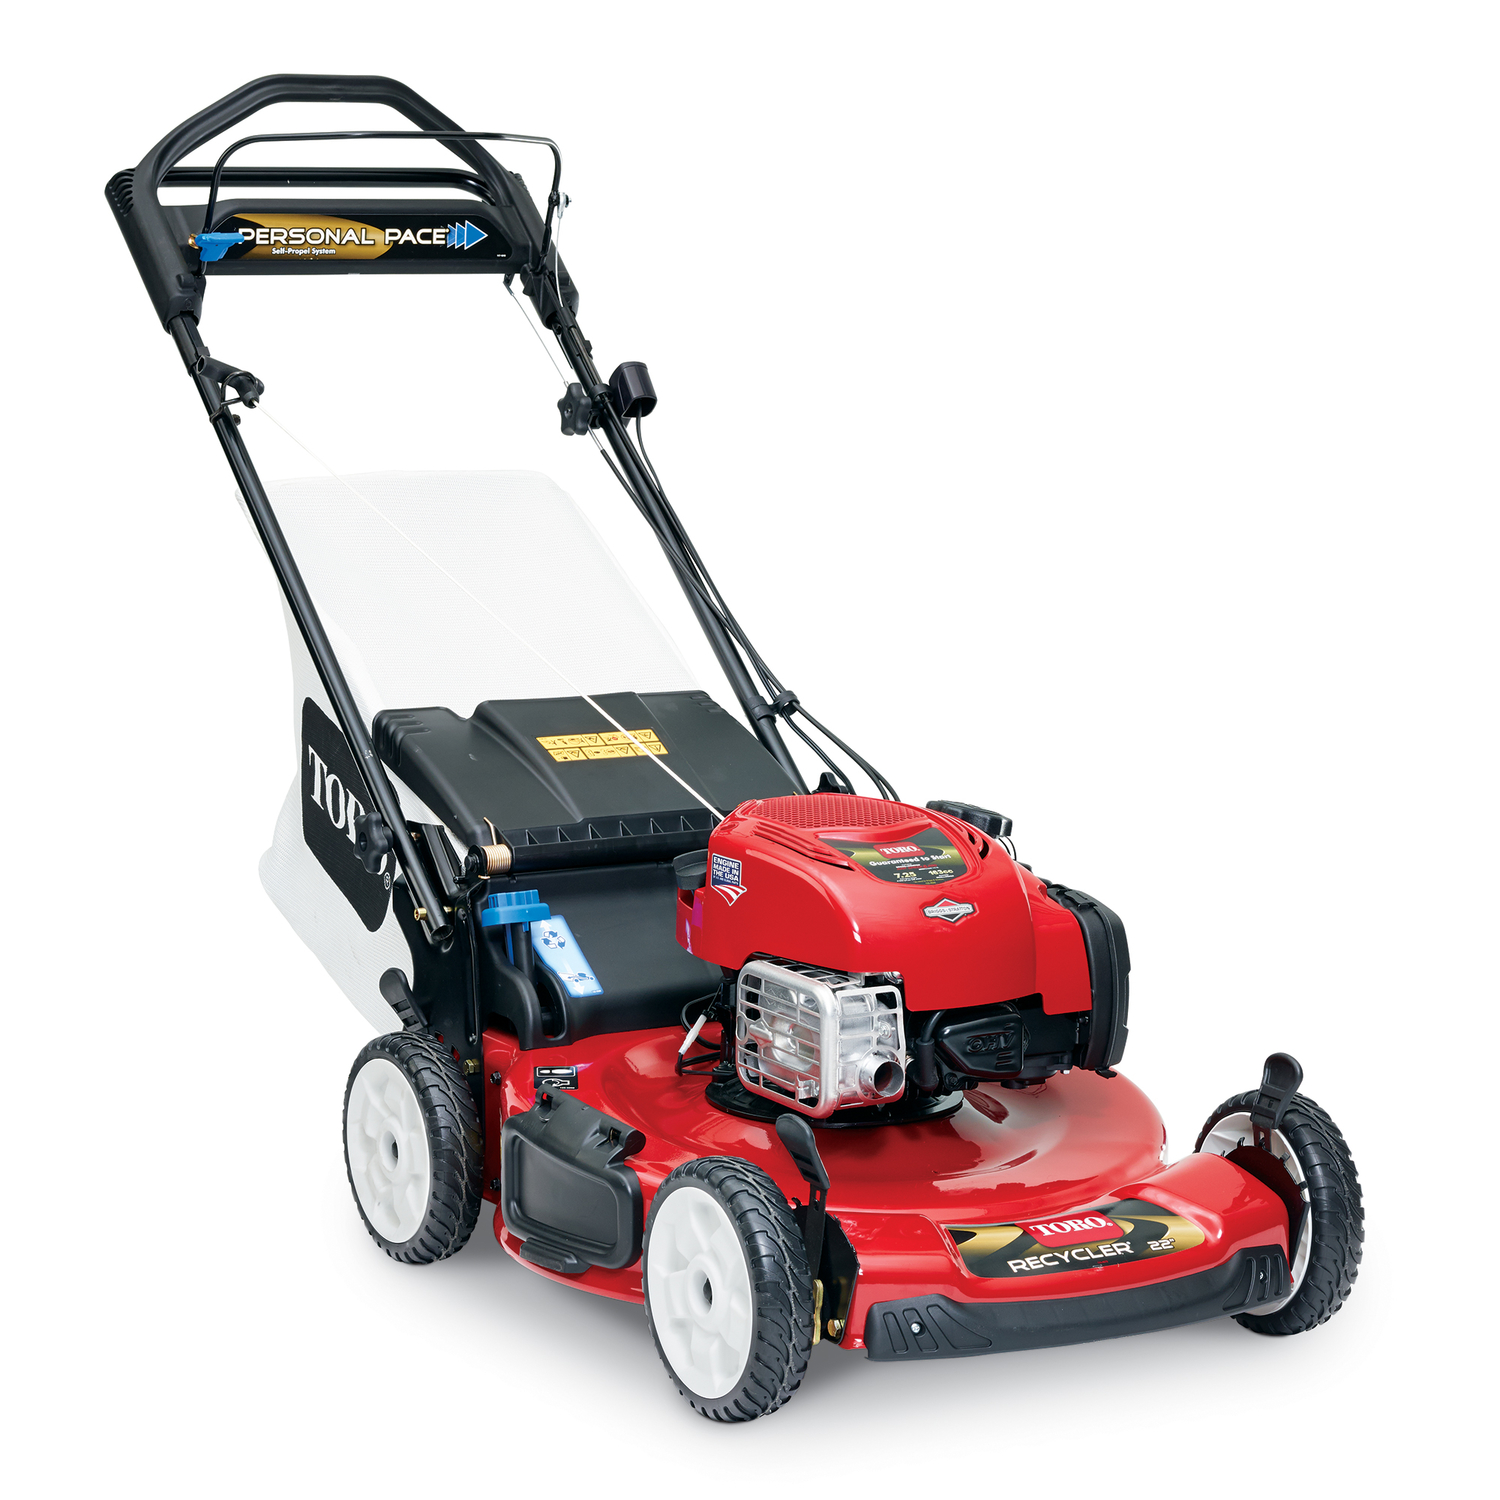 Toro Personal Pace 22 163 cc Self-Propelled Lawn Mower